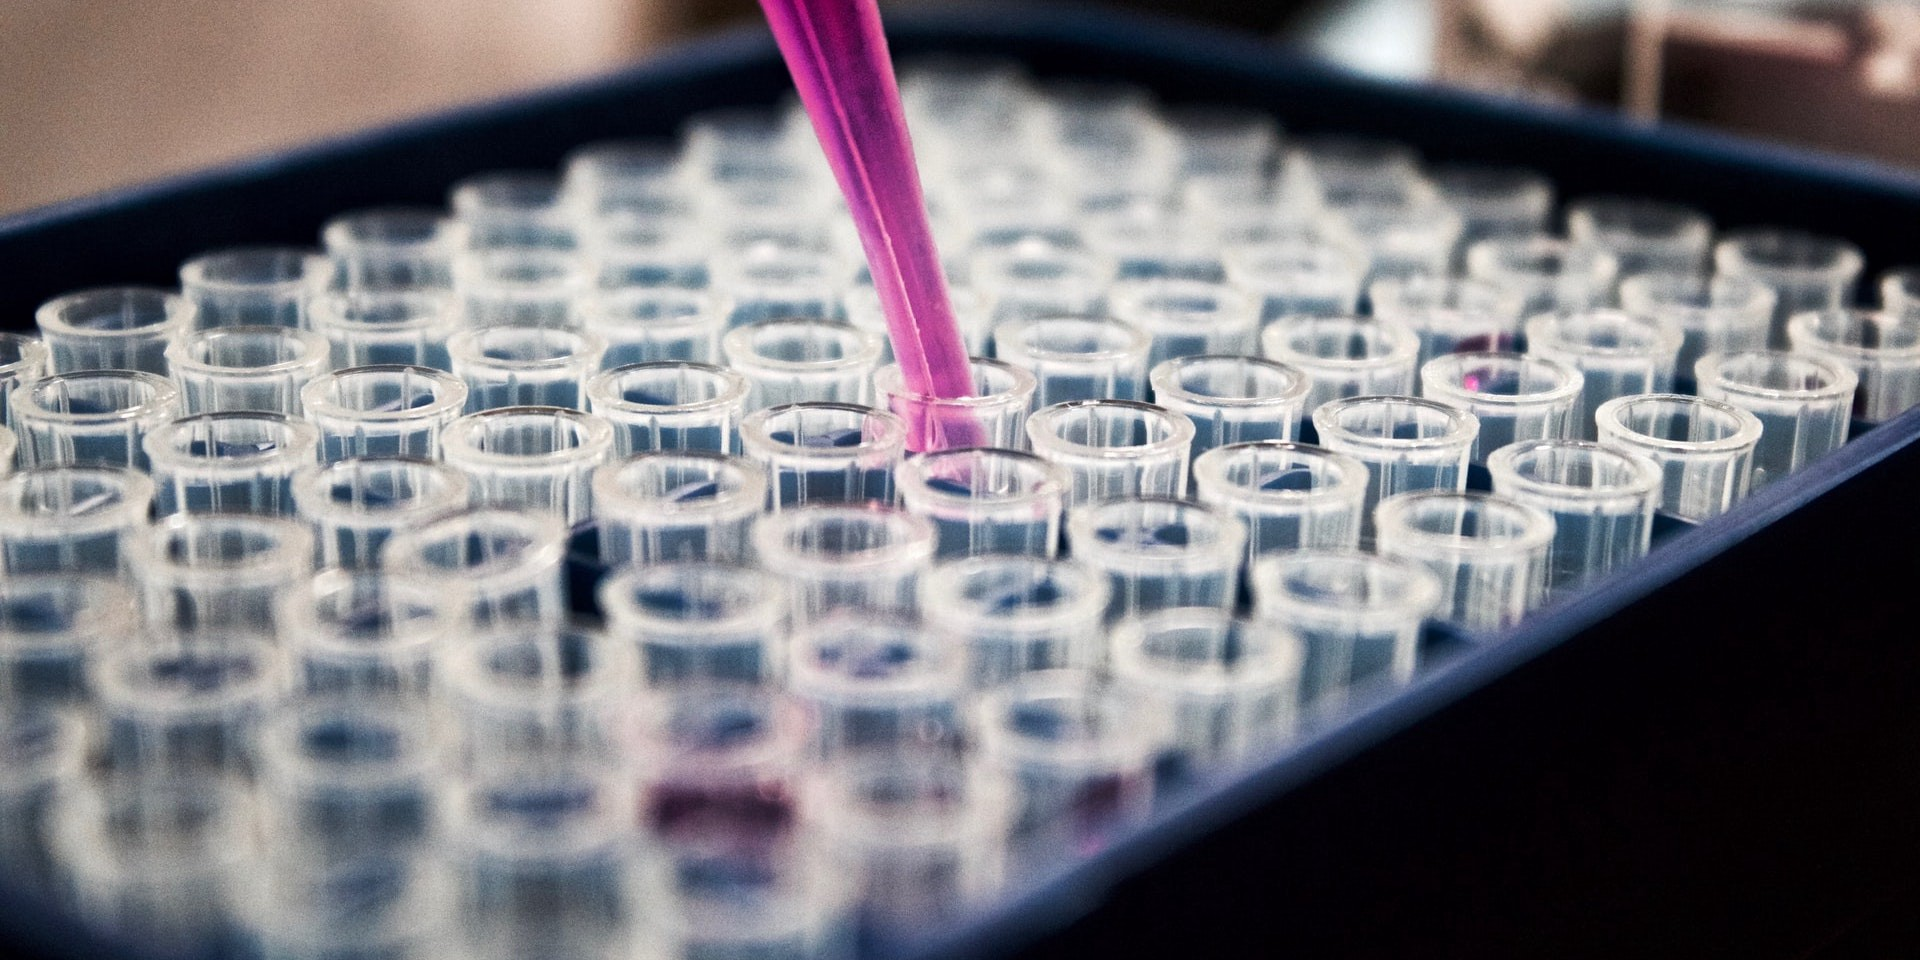 A pipette containing pink liquid fills multiple test tubes ahead of testing